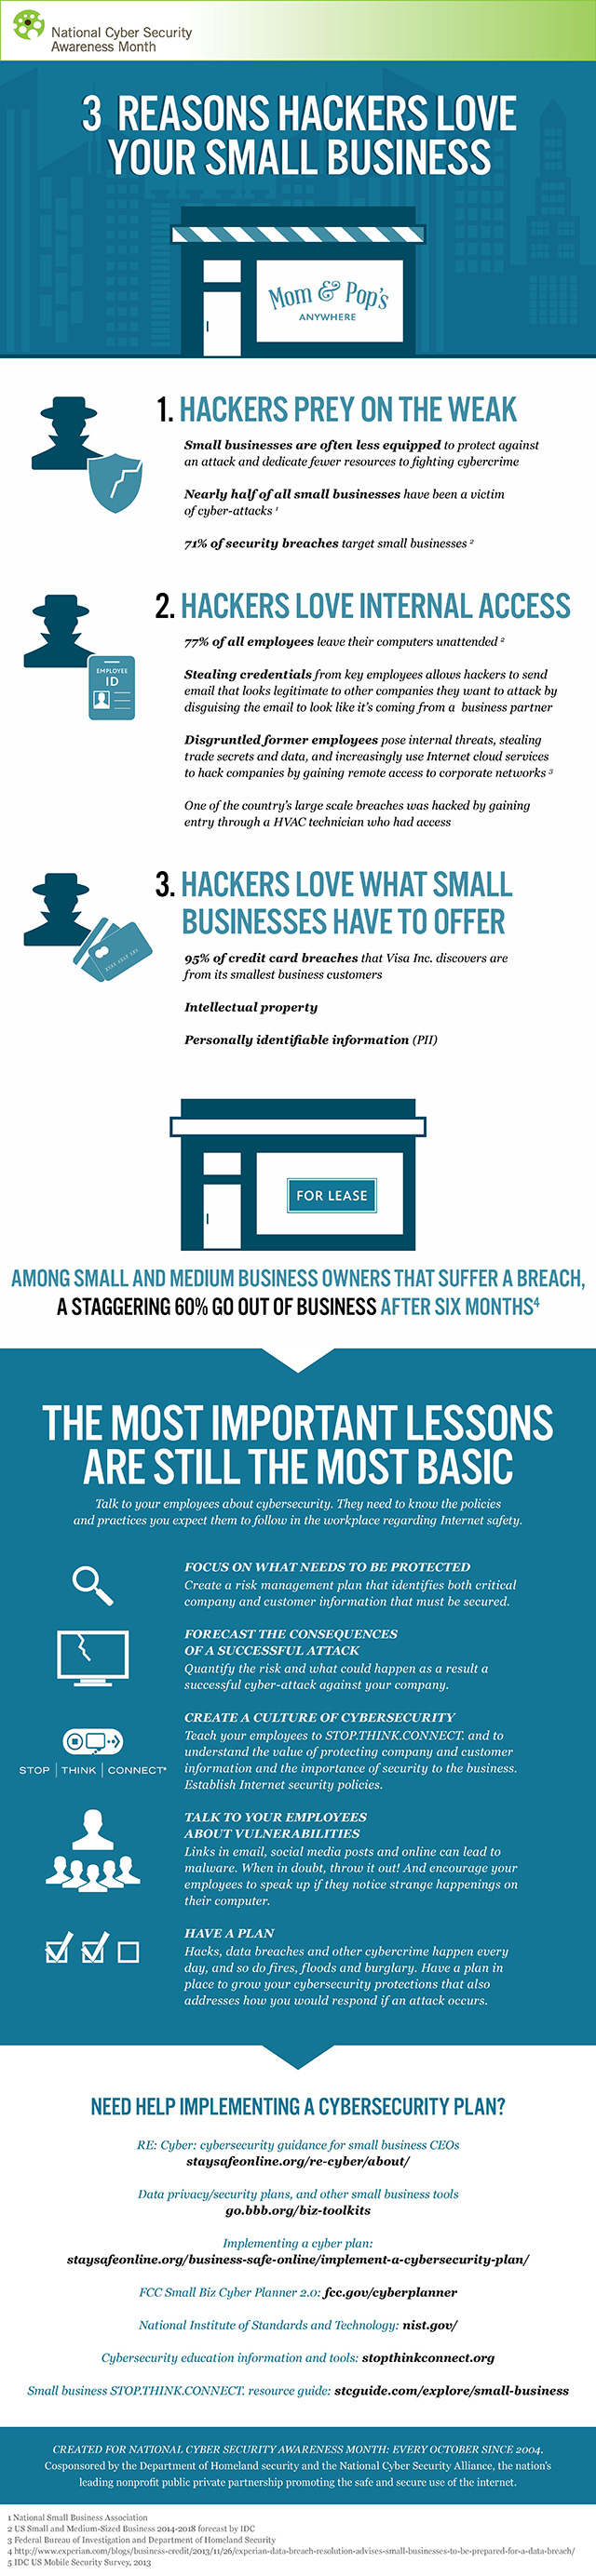 Cybercriminals Target Small Businesses - Infographic